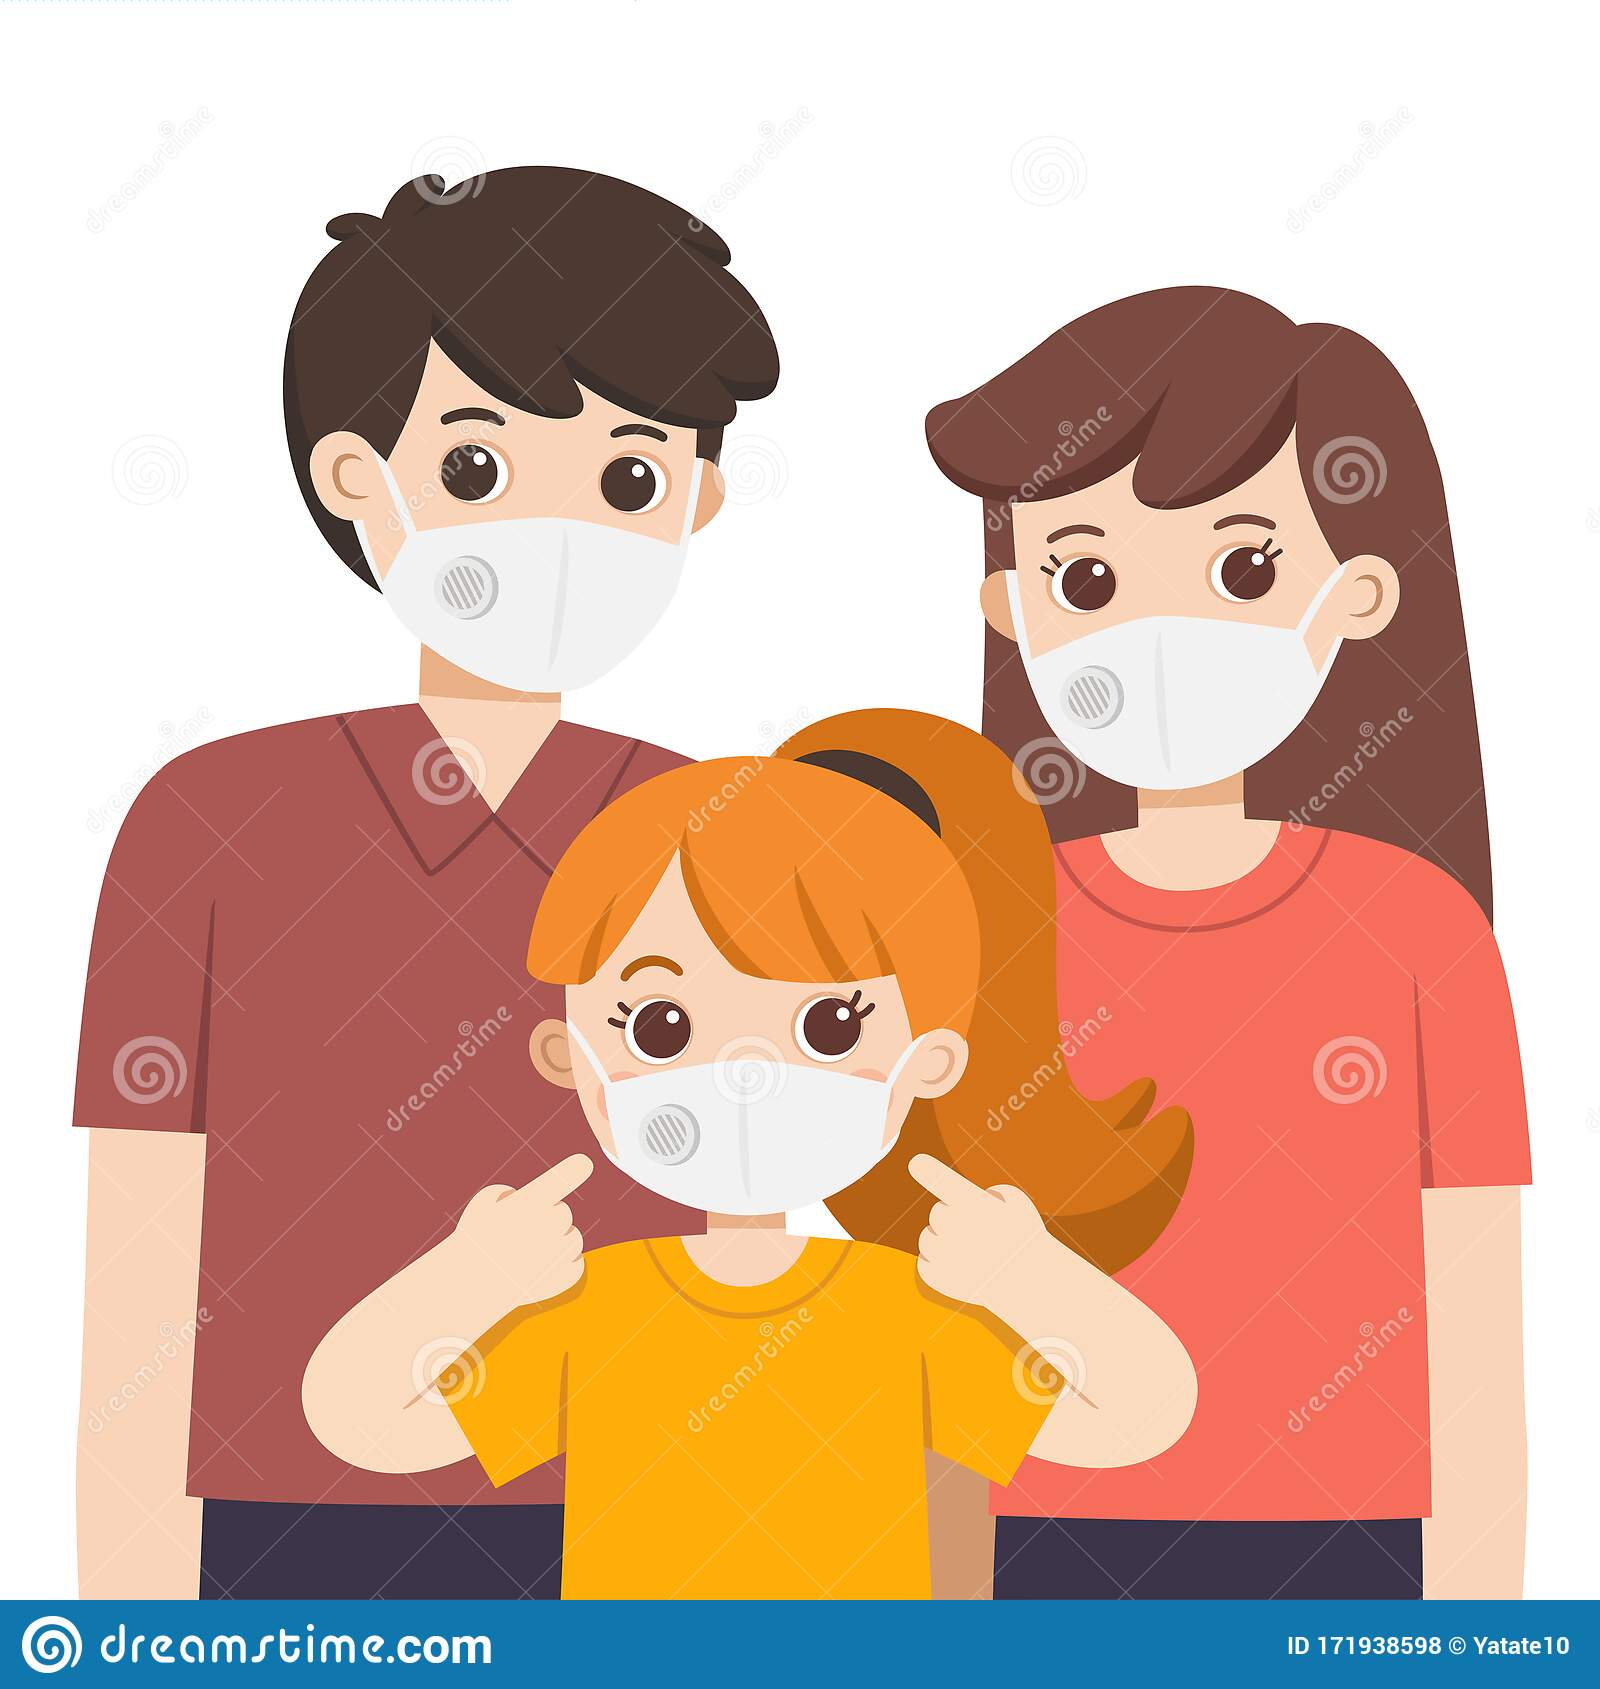 child mask virus